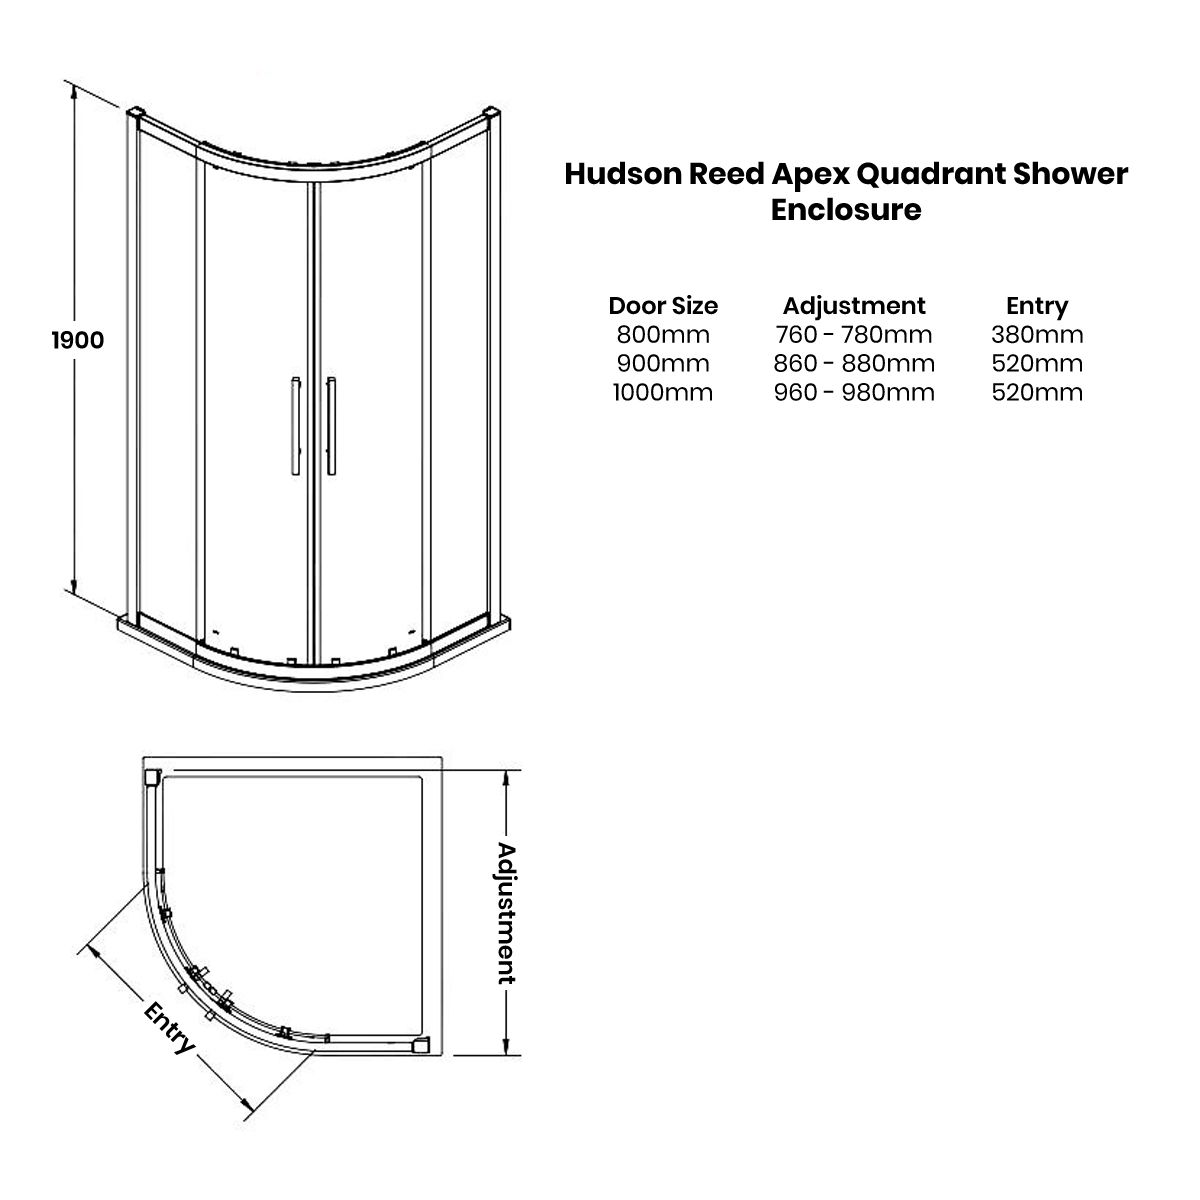 Hudson Reed Apex Quadrant Shower Enclosure Dimensions